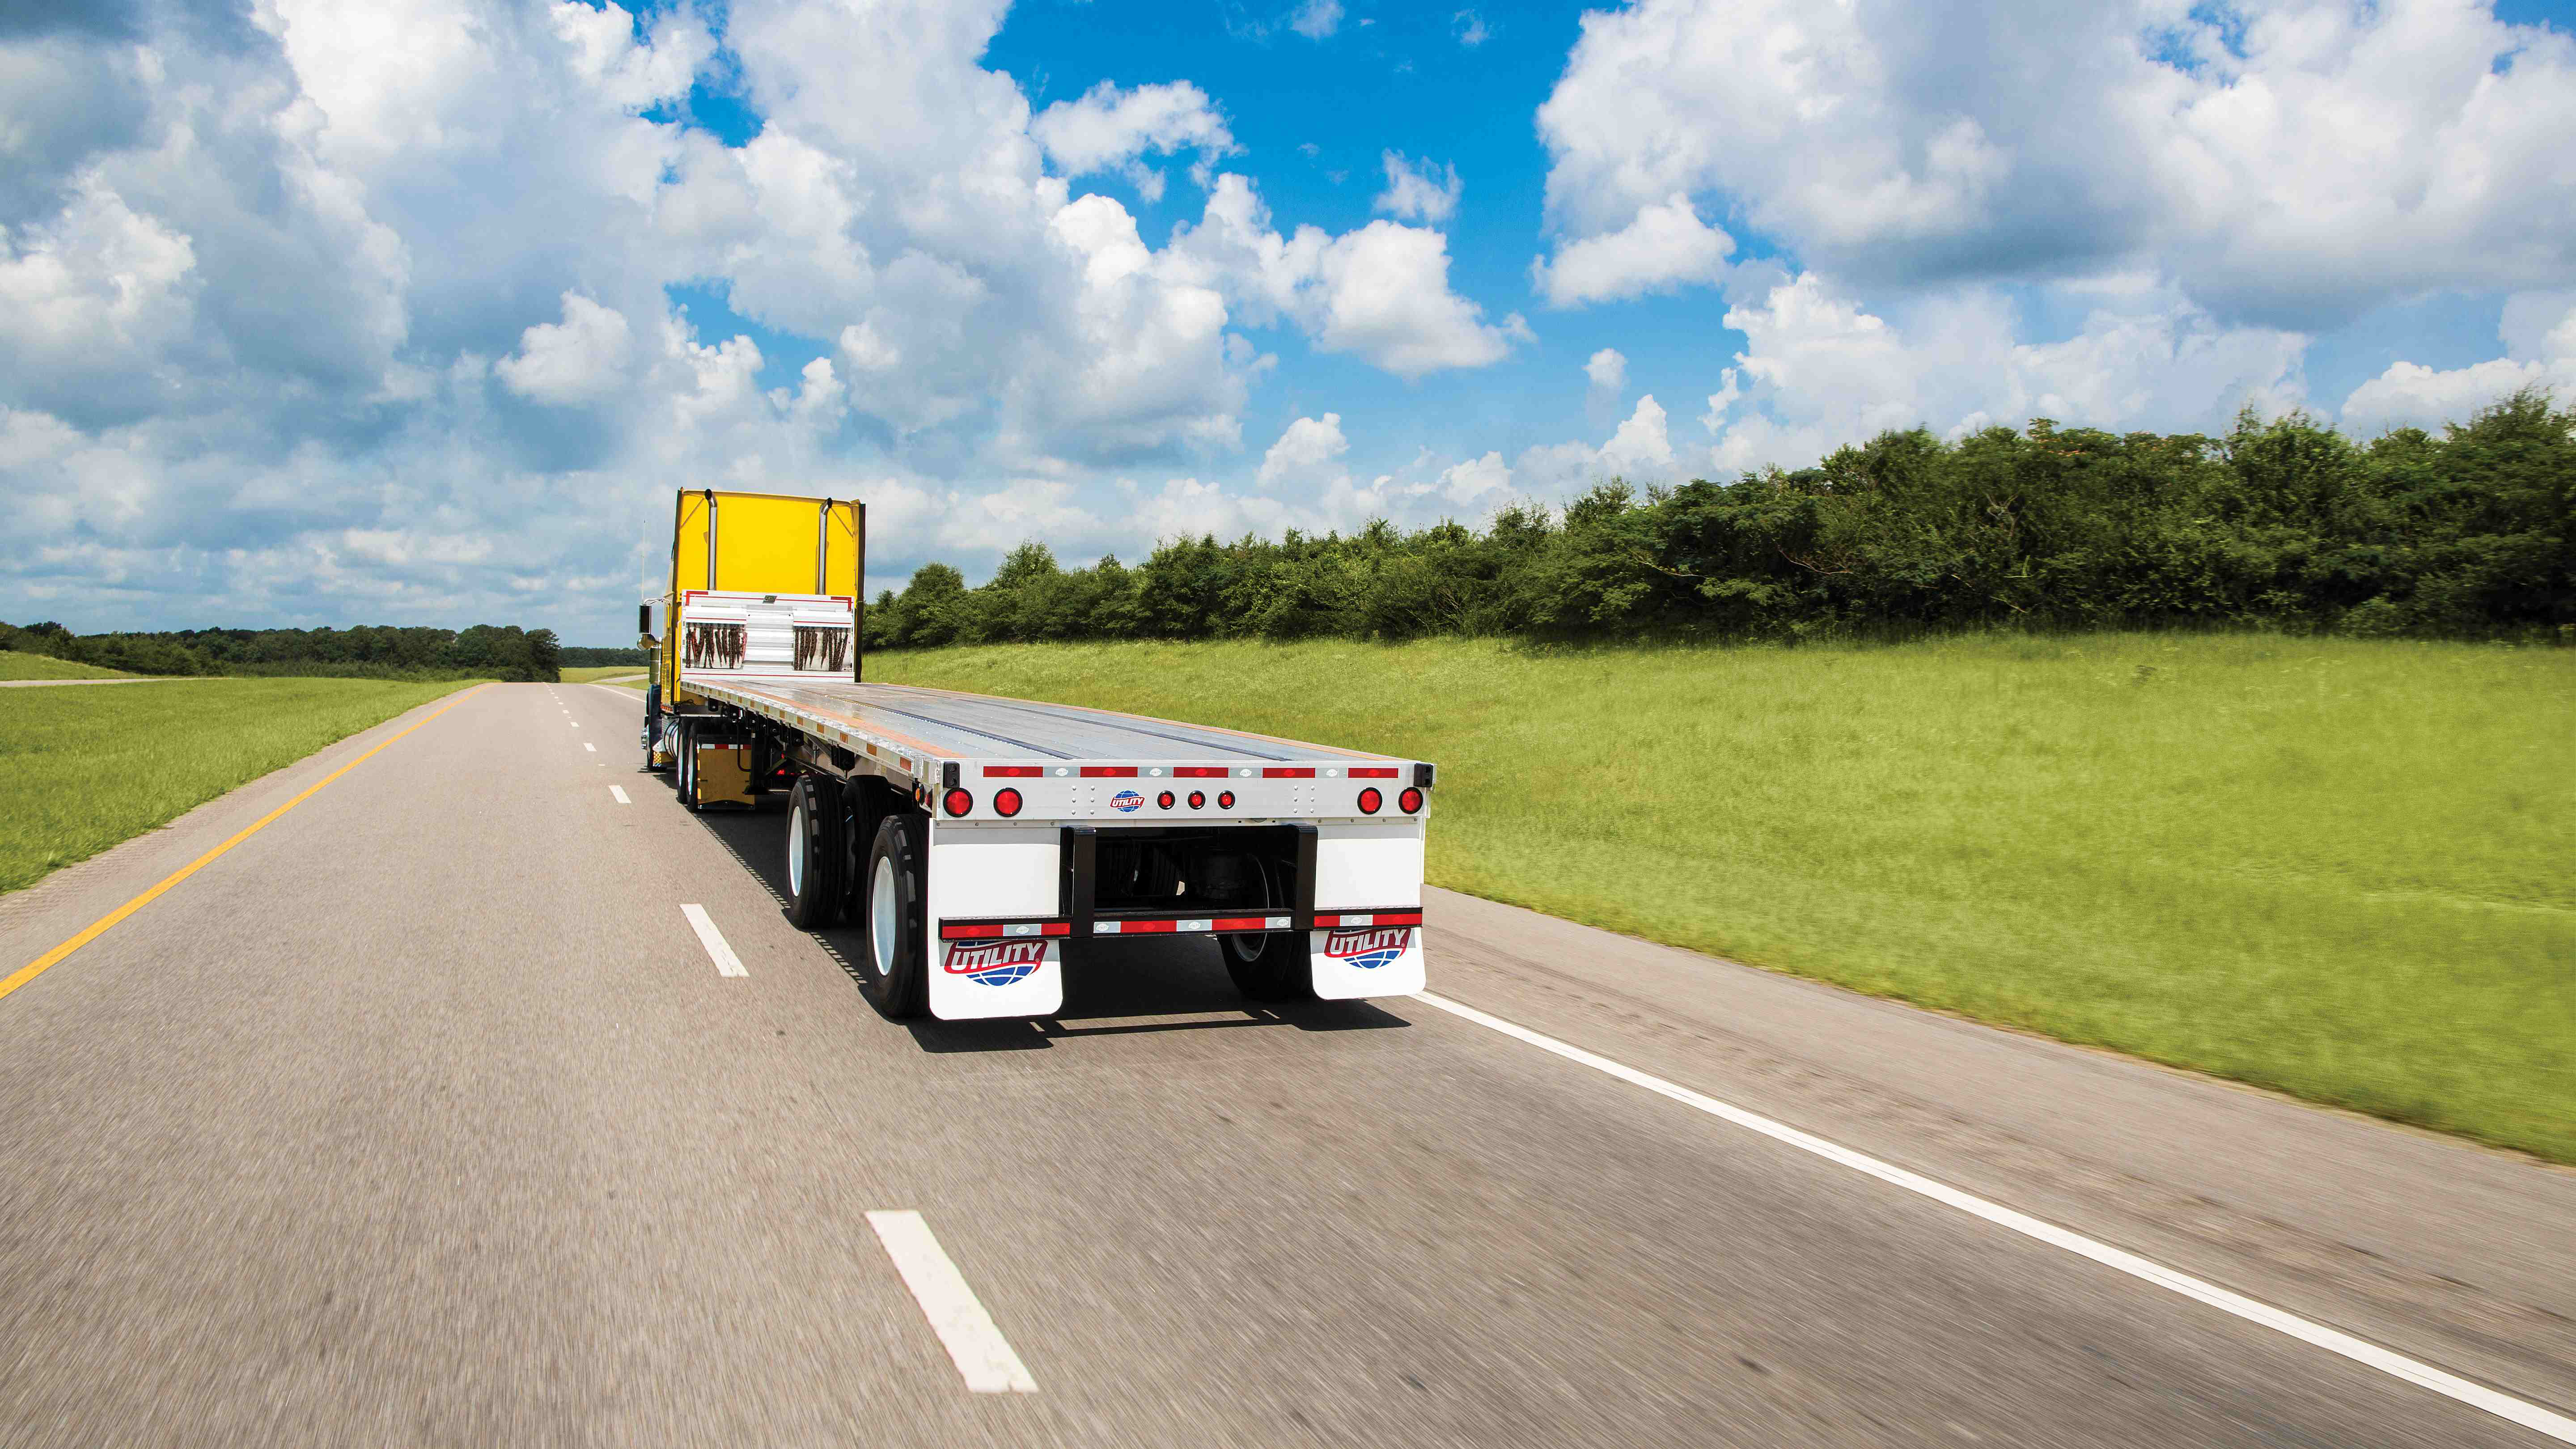 Utility Trailer introduces new, lighter flatbed